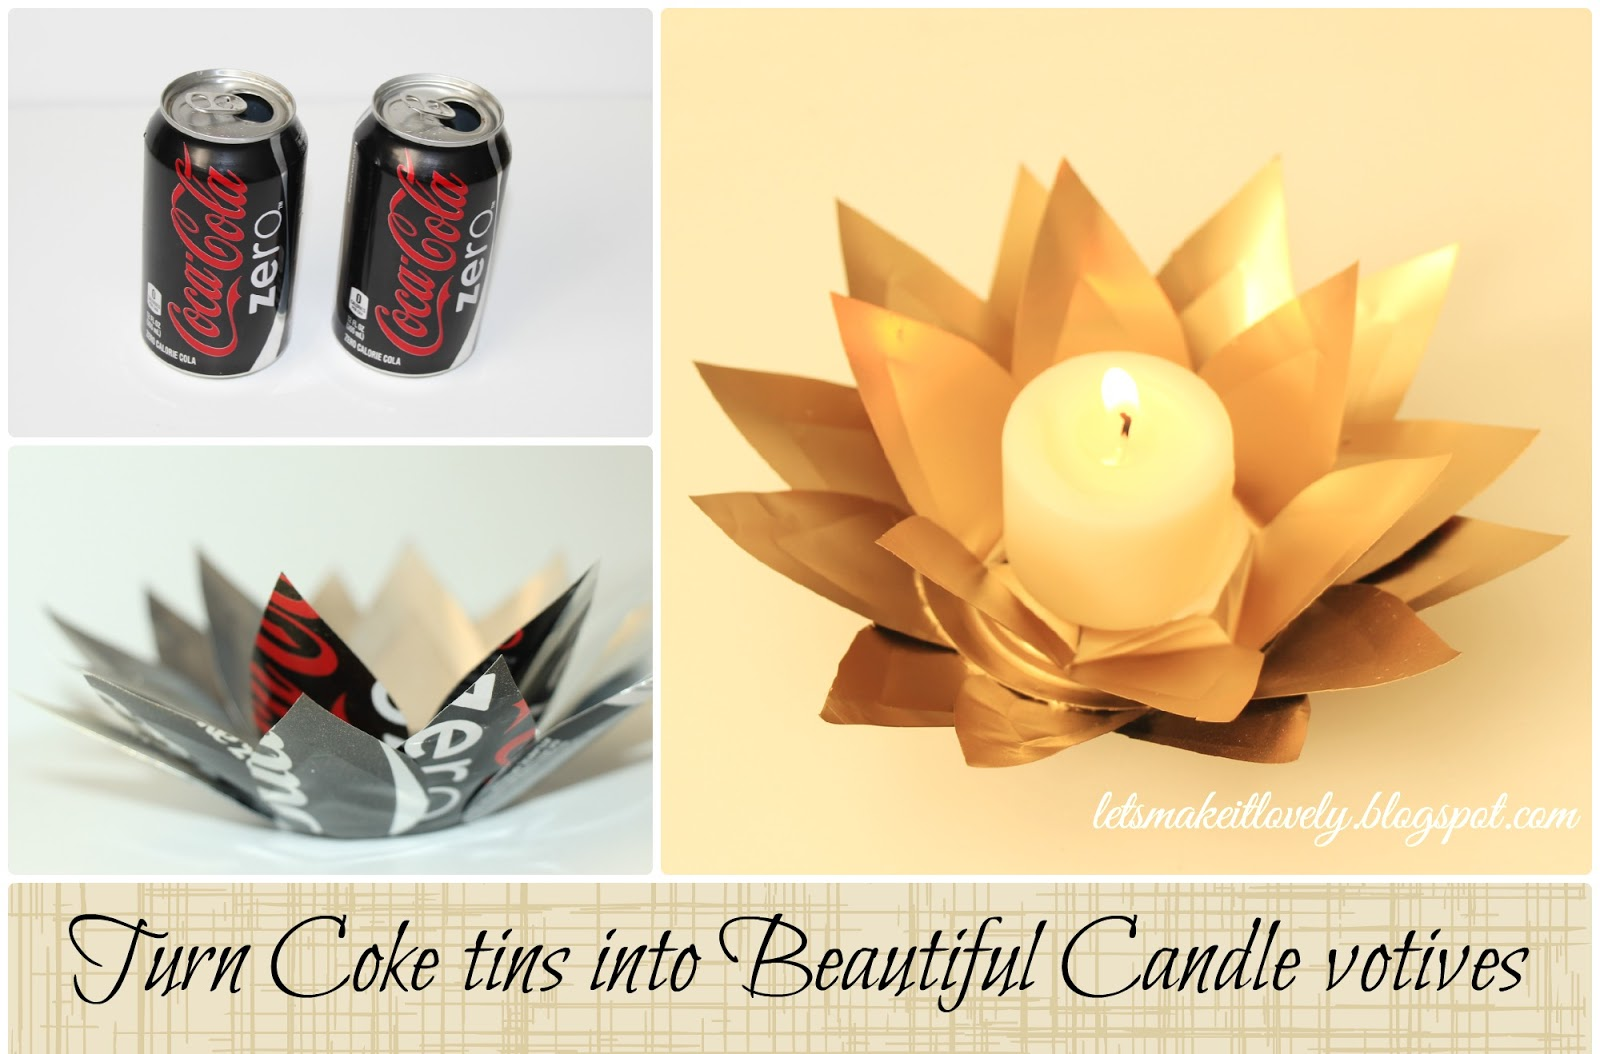 Let's make it lovely: Turn Coke tins into Beautiful Candle